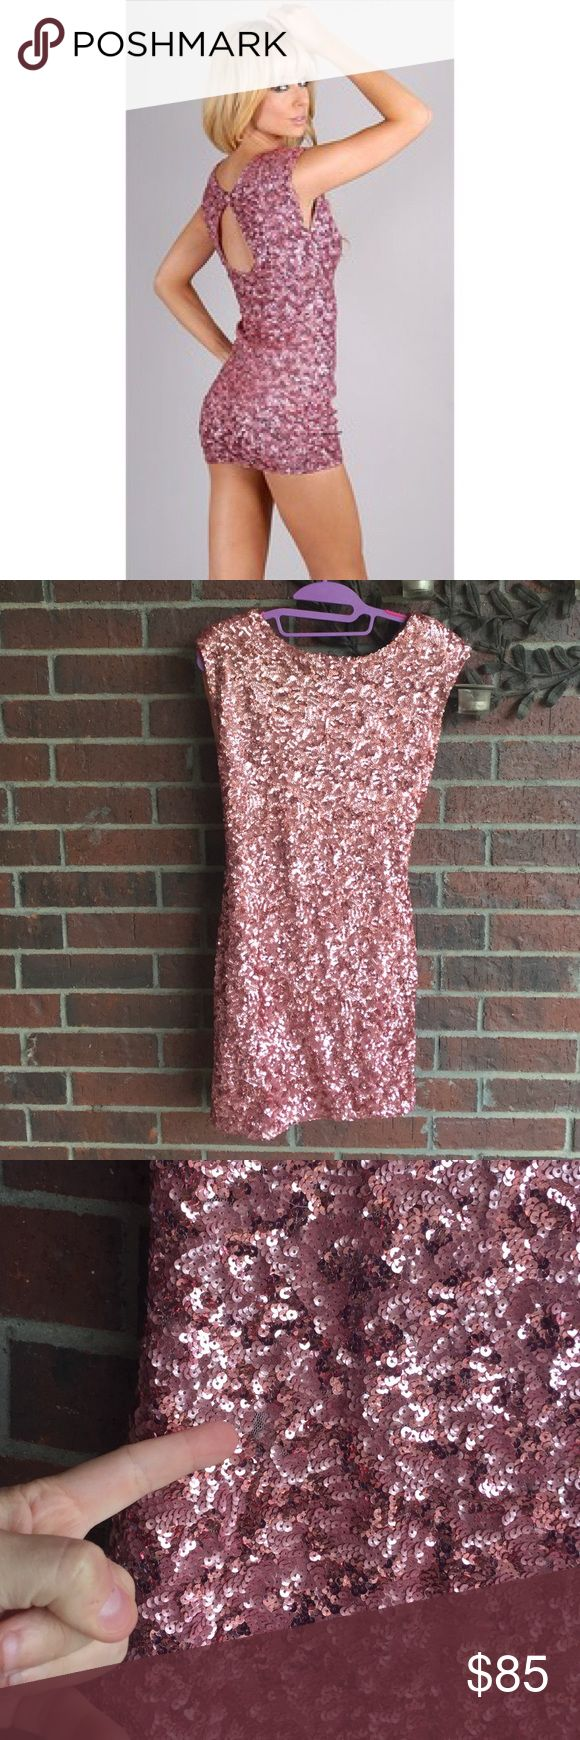 Alice + Olivia pink sequin Keyhole dress size M Such a fun dress! Size M with measurements of 17-19 in from underarm to underarm and 23 in from underarm going down the side length.   There is one very small area of sequins missing that I have taken a picture of.  It's definitely not that noticeable at all!  (1213vt) Alice + Olivia Dresses